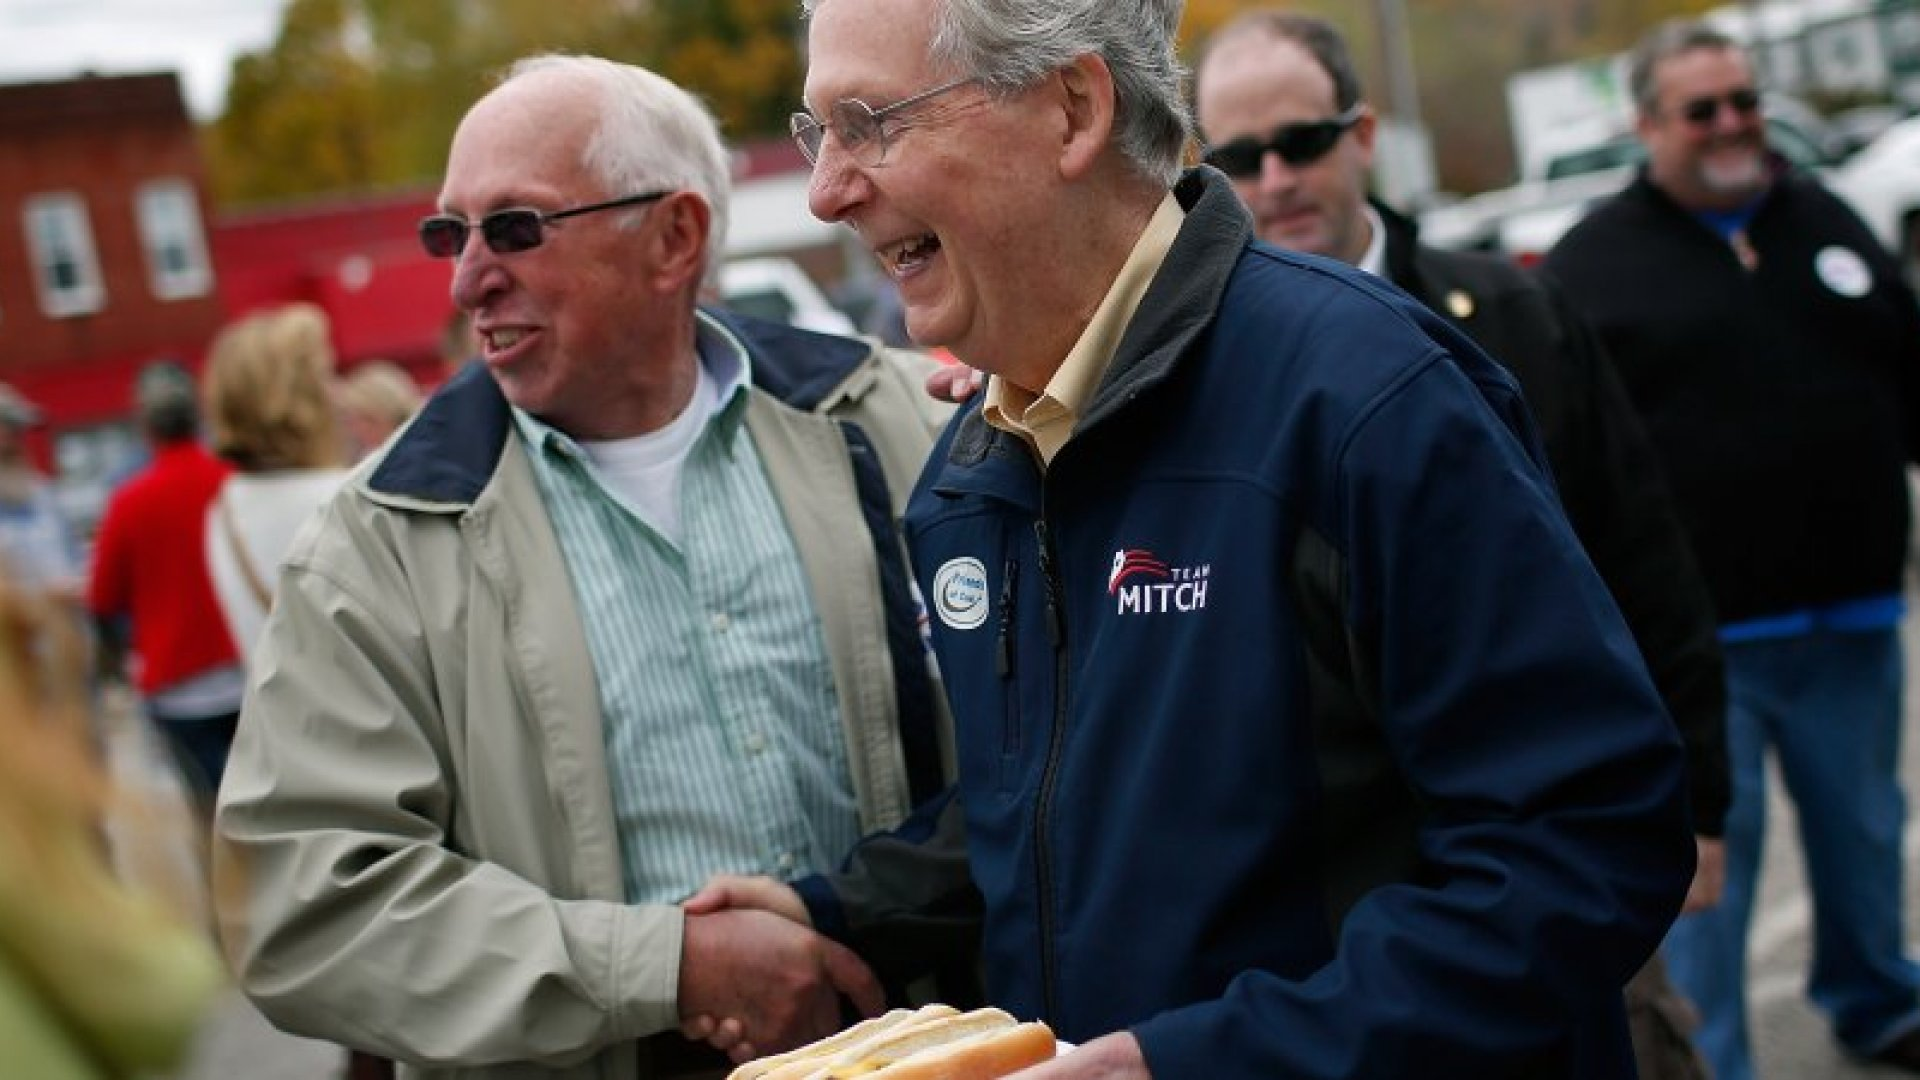 Senate Minority Leader Mitch McConnell (R-KY) (R) greets Kentucky voters after speaking at a campaign rally October 22, 2014 in Vanceburg, Kentucky. McConnell remains locked in a tight race with U.S. Senate Democratic candidate and Kentucky Secretary of State Alison Lundergan Grimes. (Photo by Win McNamee/Getty Images)